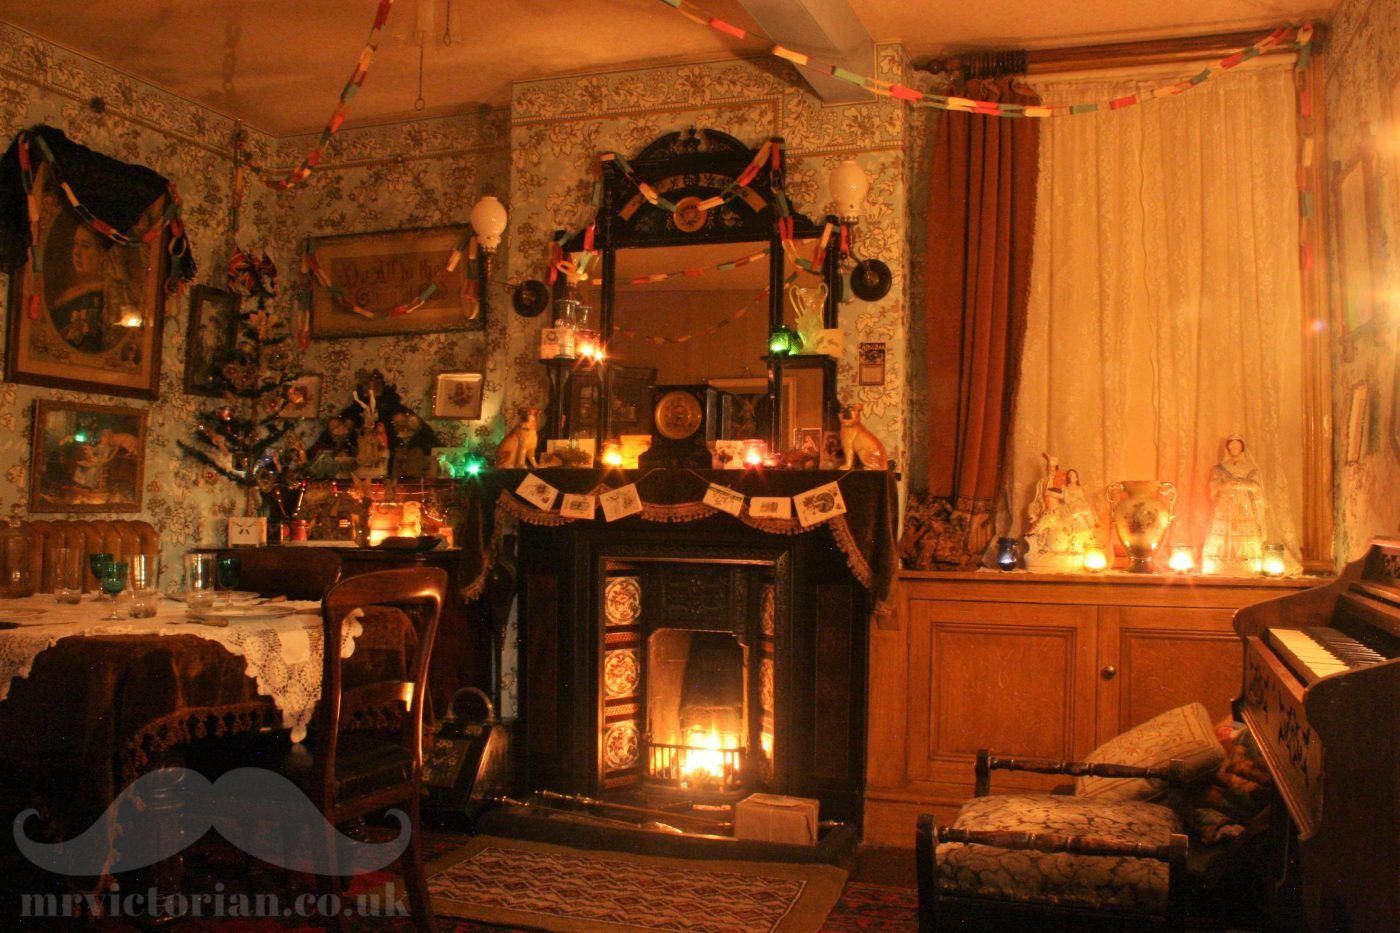 Victorian Christmas parlour decorations fairy lights feather tree ornaments gas lights wallpaper